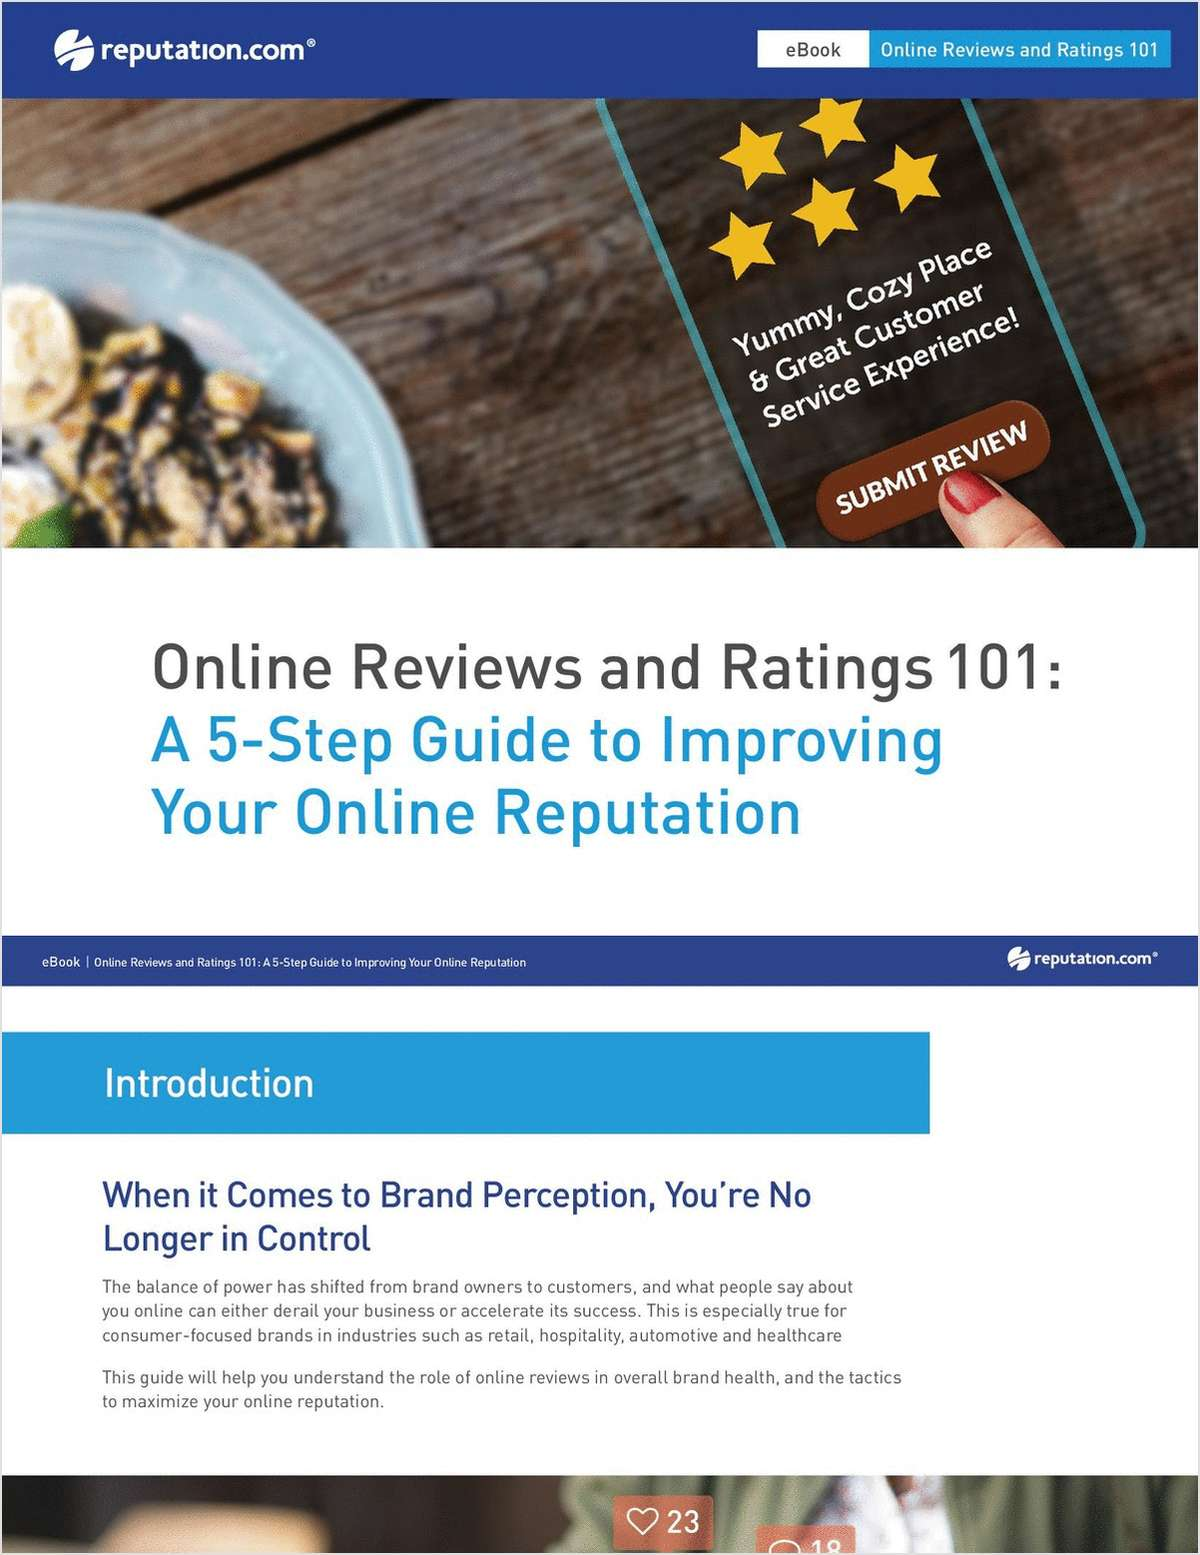 A 5-Step Guide to Improving Your Online Reputation